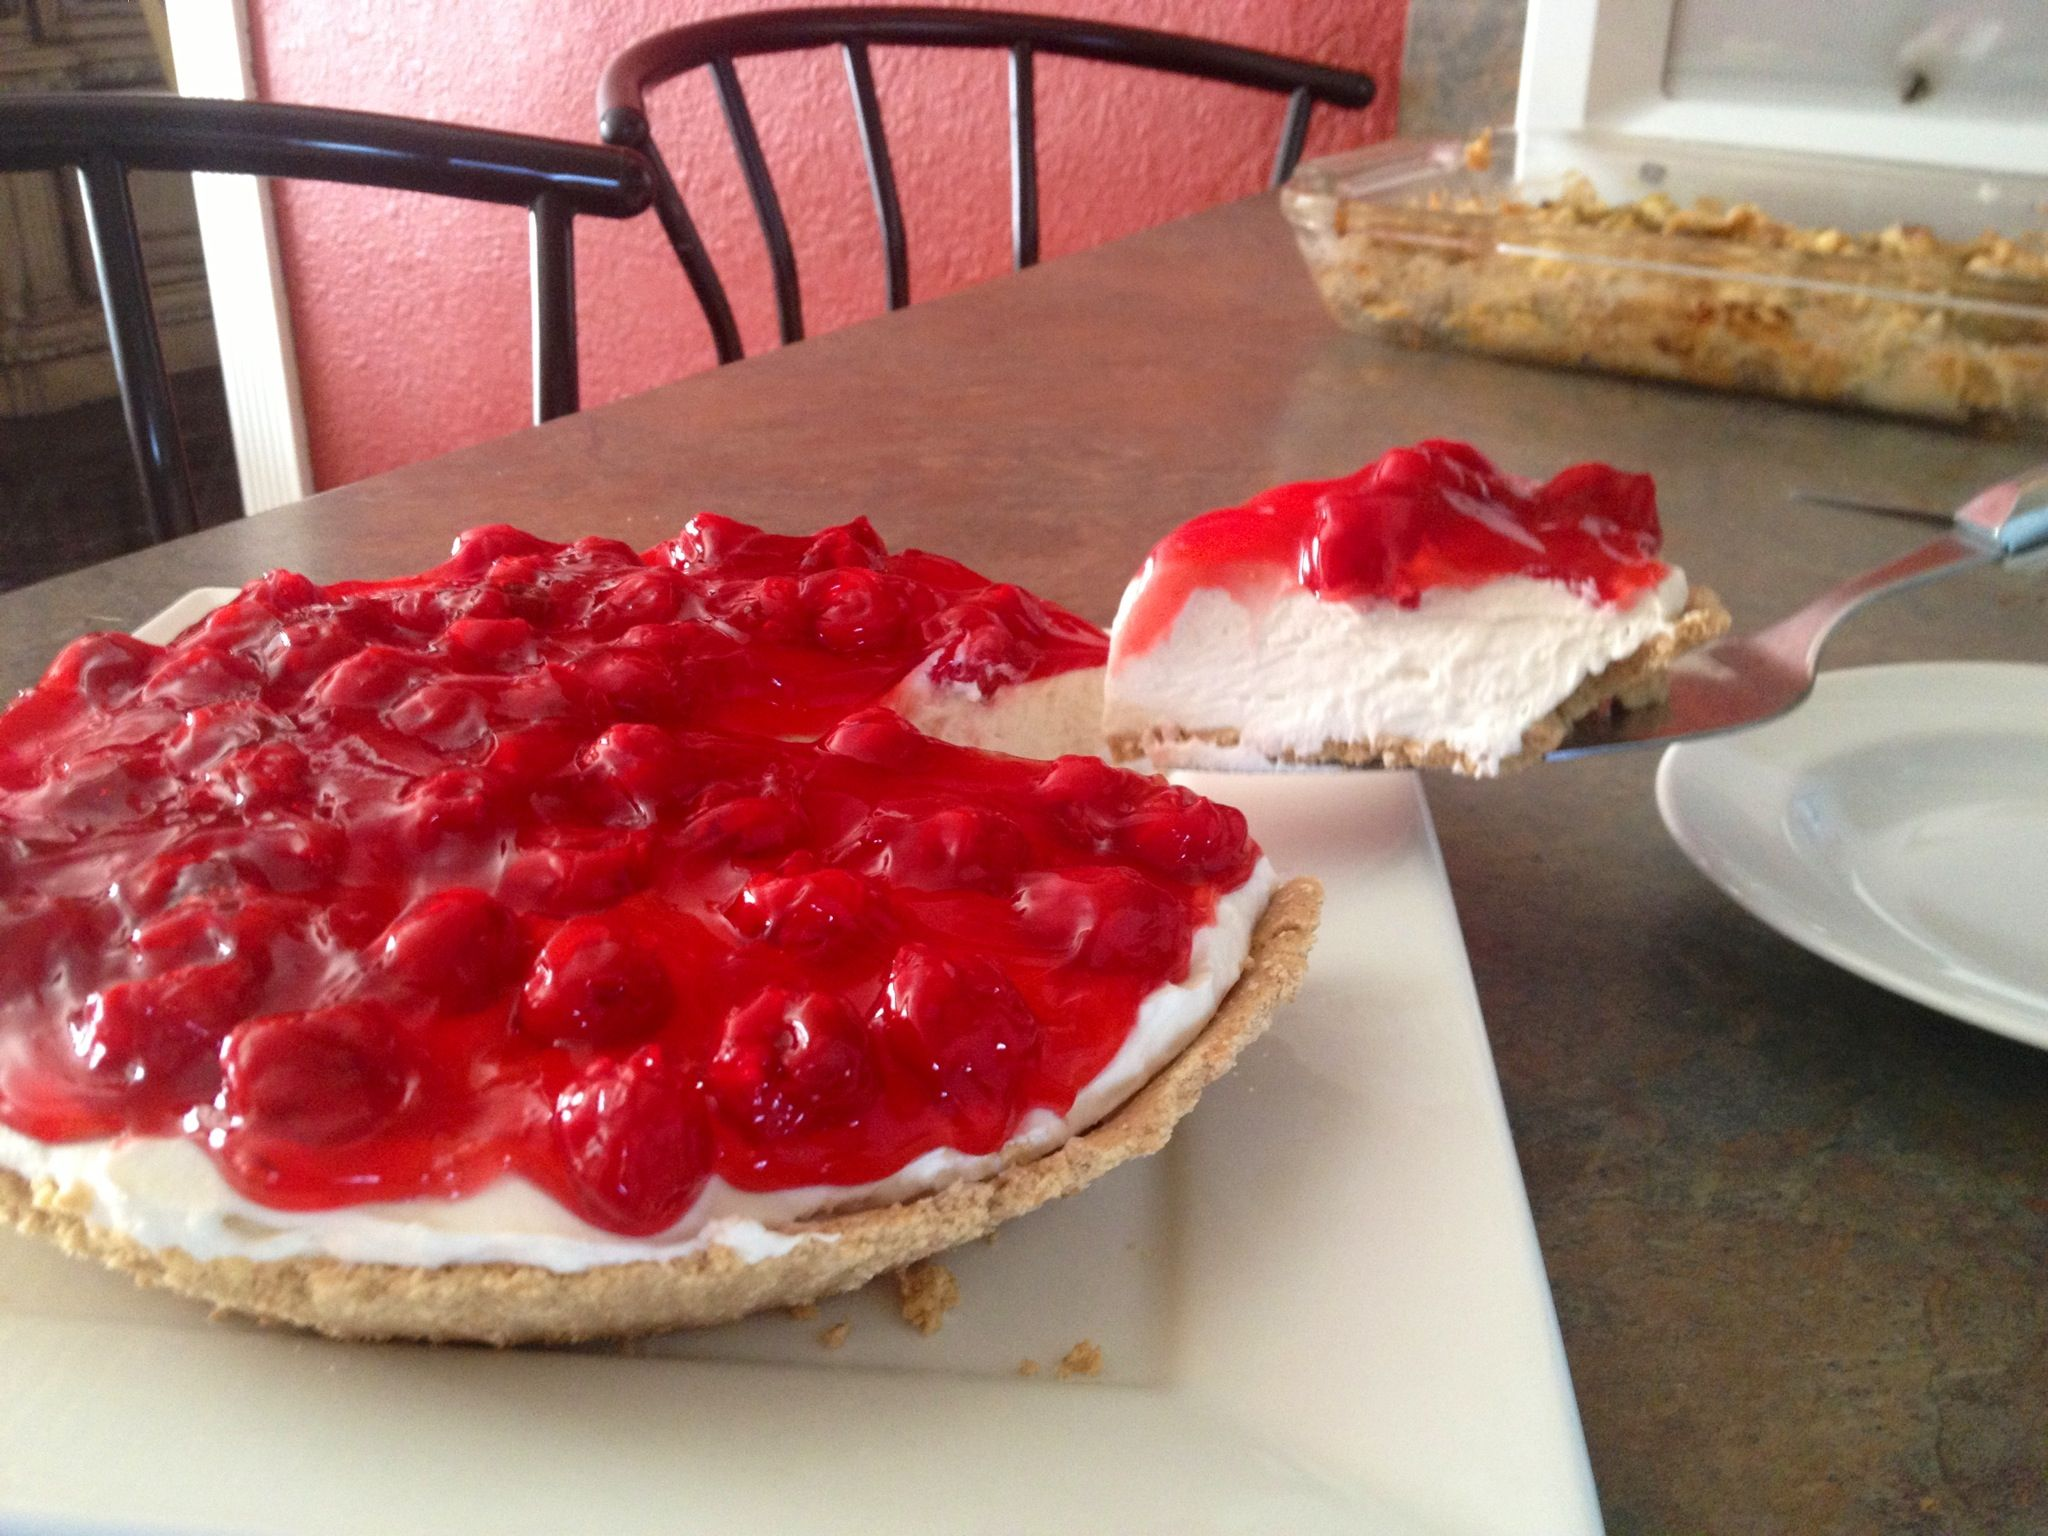 (No bake) cheesecake to die for! Easy, Fast, & Cheap to make. Y'all gotta try to make it at least once in you life. You won't regret it ;)